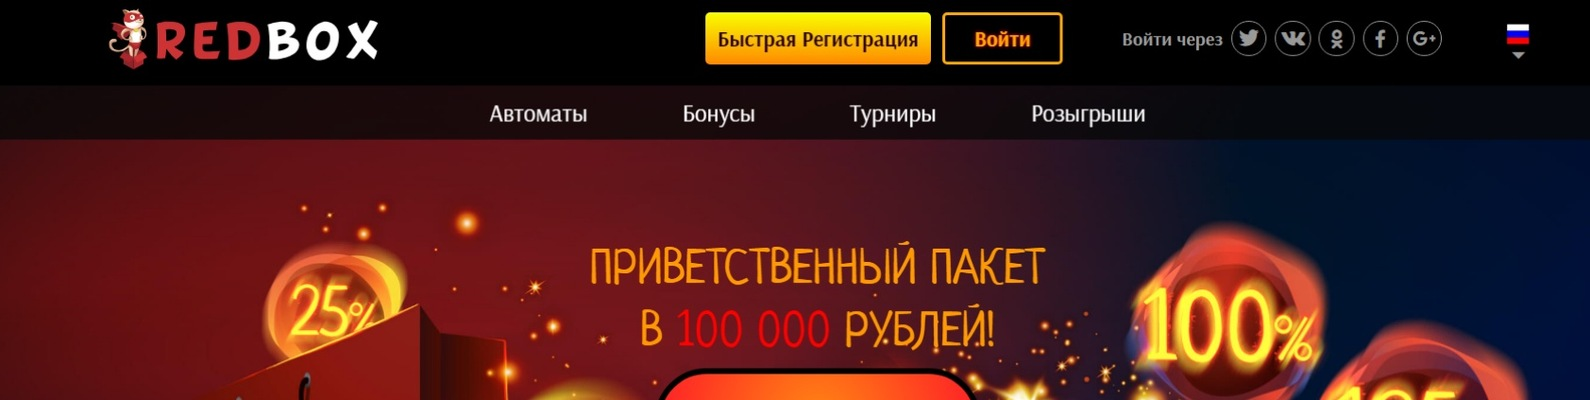 Читы для world poker club apk андроид